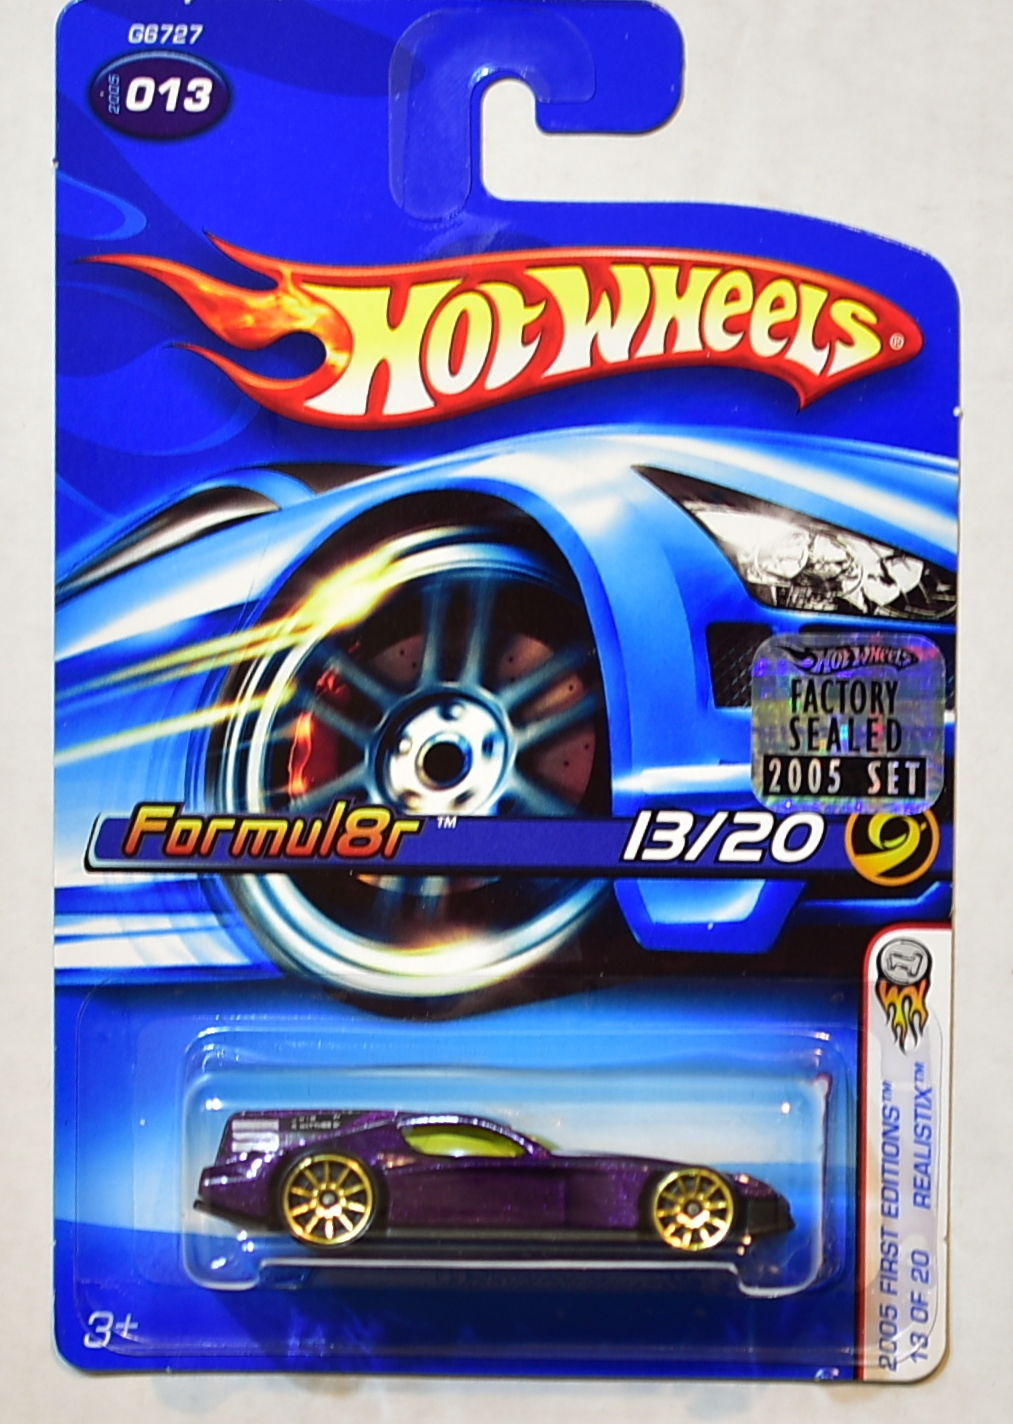 HOT WHEELS 2005 FIRST EDITIONS REALISTIX FORMUL8R 13/20 #013 FACTORY SEALED